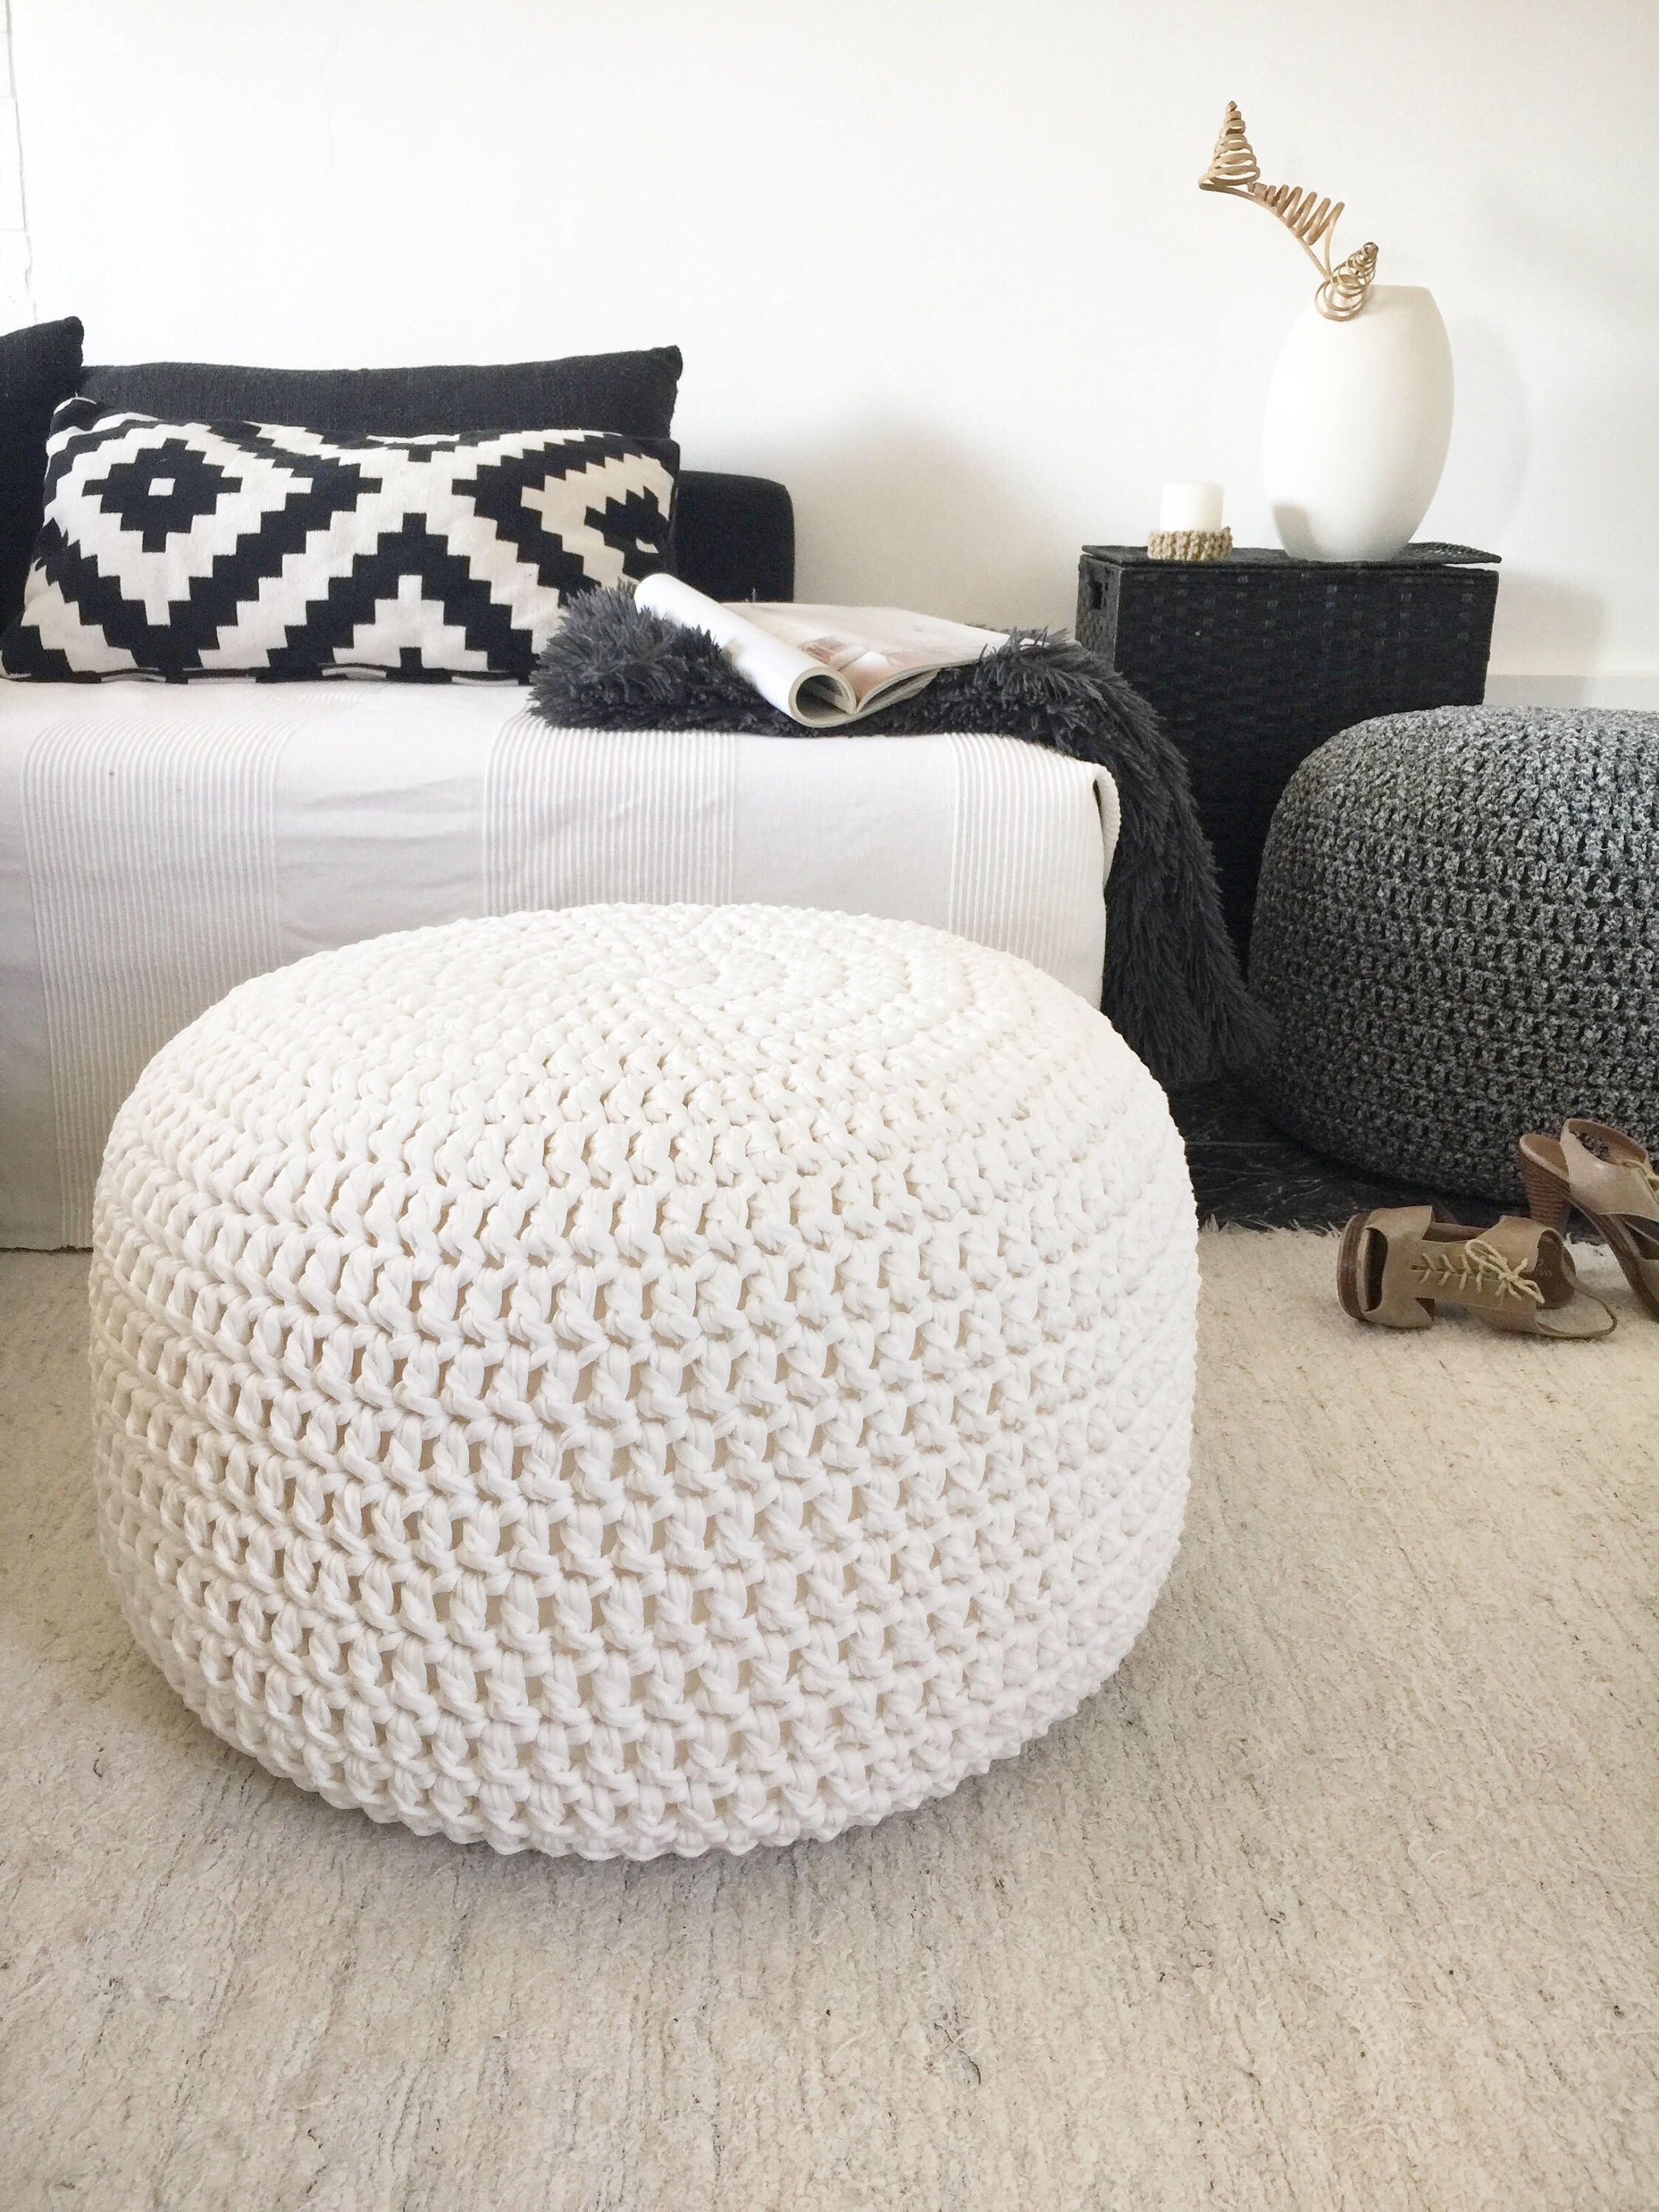 "Large Pouf Ottoman Enchanting Large Stuffed Crochet Pouf Ottoman Nursery Footstool 24"" Floor Design Ideas"